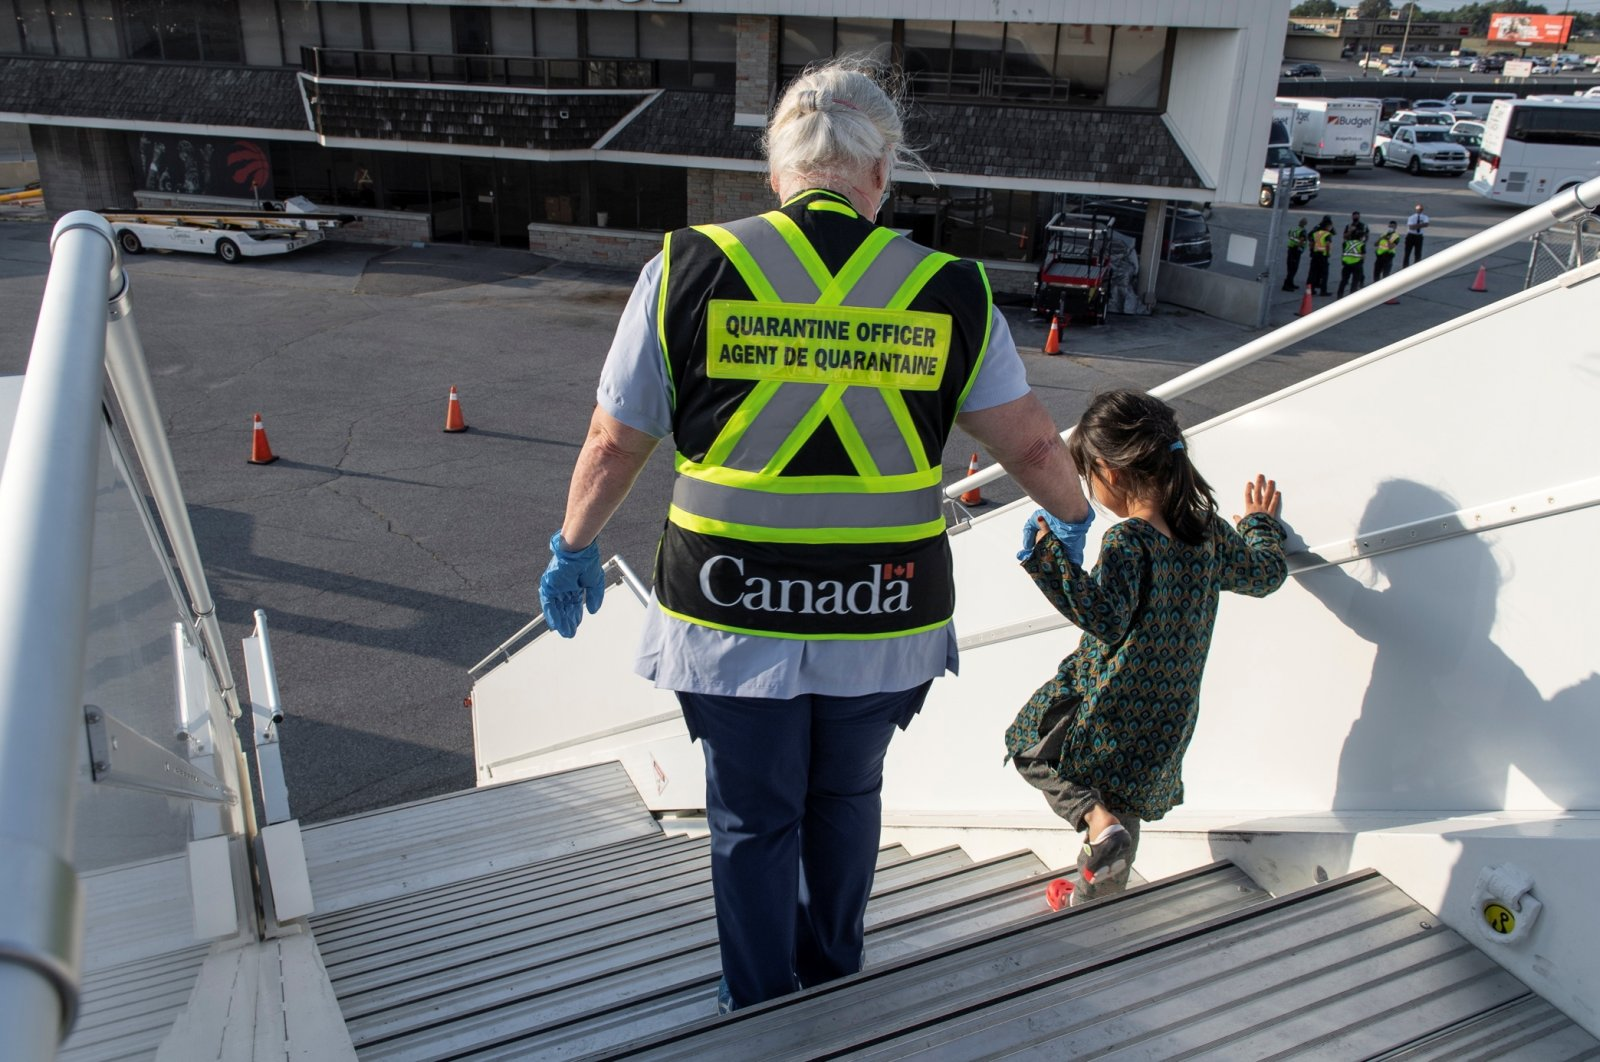 Afghan refugees who supported Canada's mission in Afghanistan arrive at Toronto Pearson International Airport, Canada, Aug. 24, 2021. (Reuters Photo)